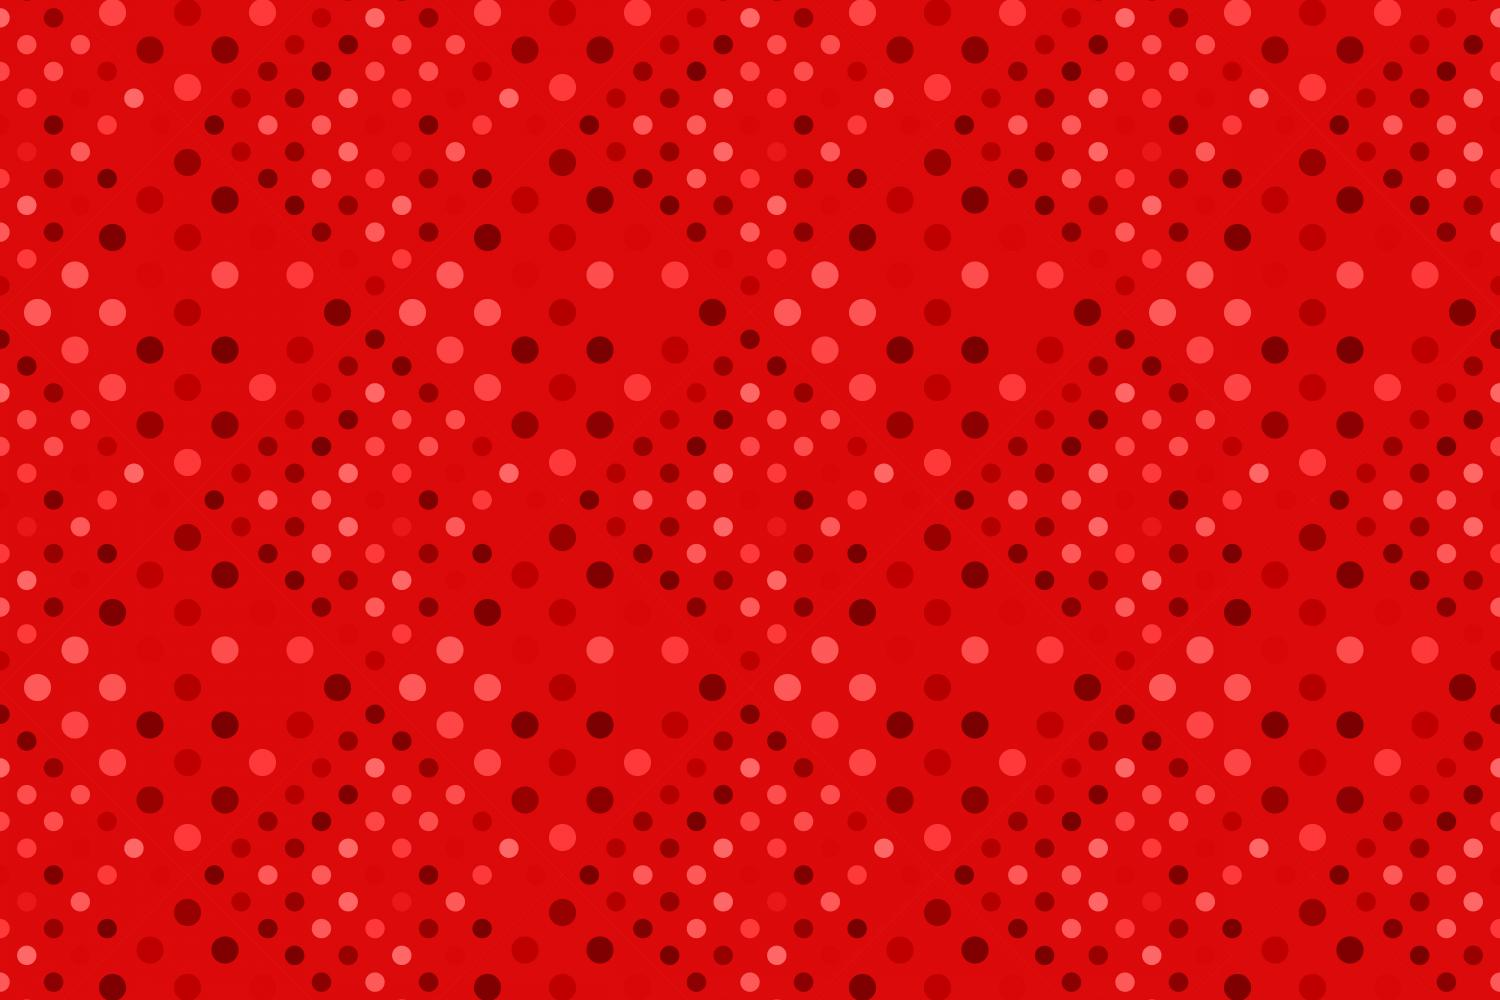 24 Seamless Red Dot Patterns example image 21